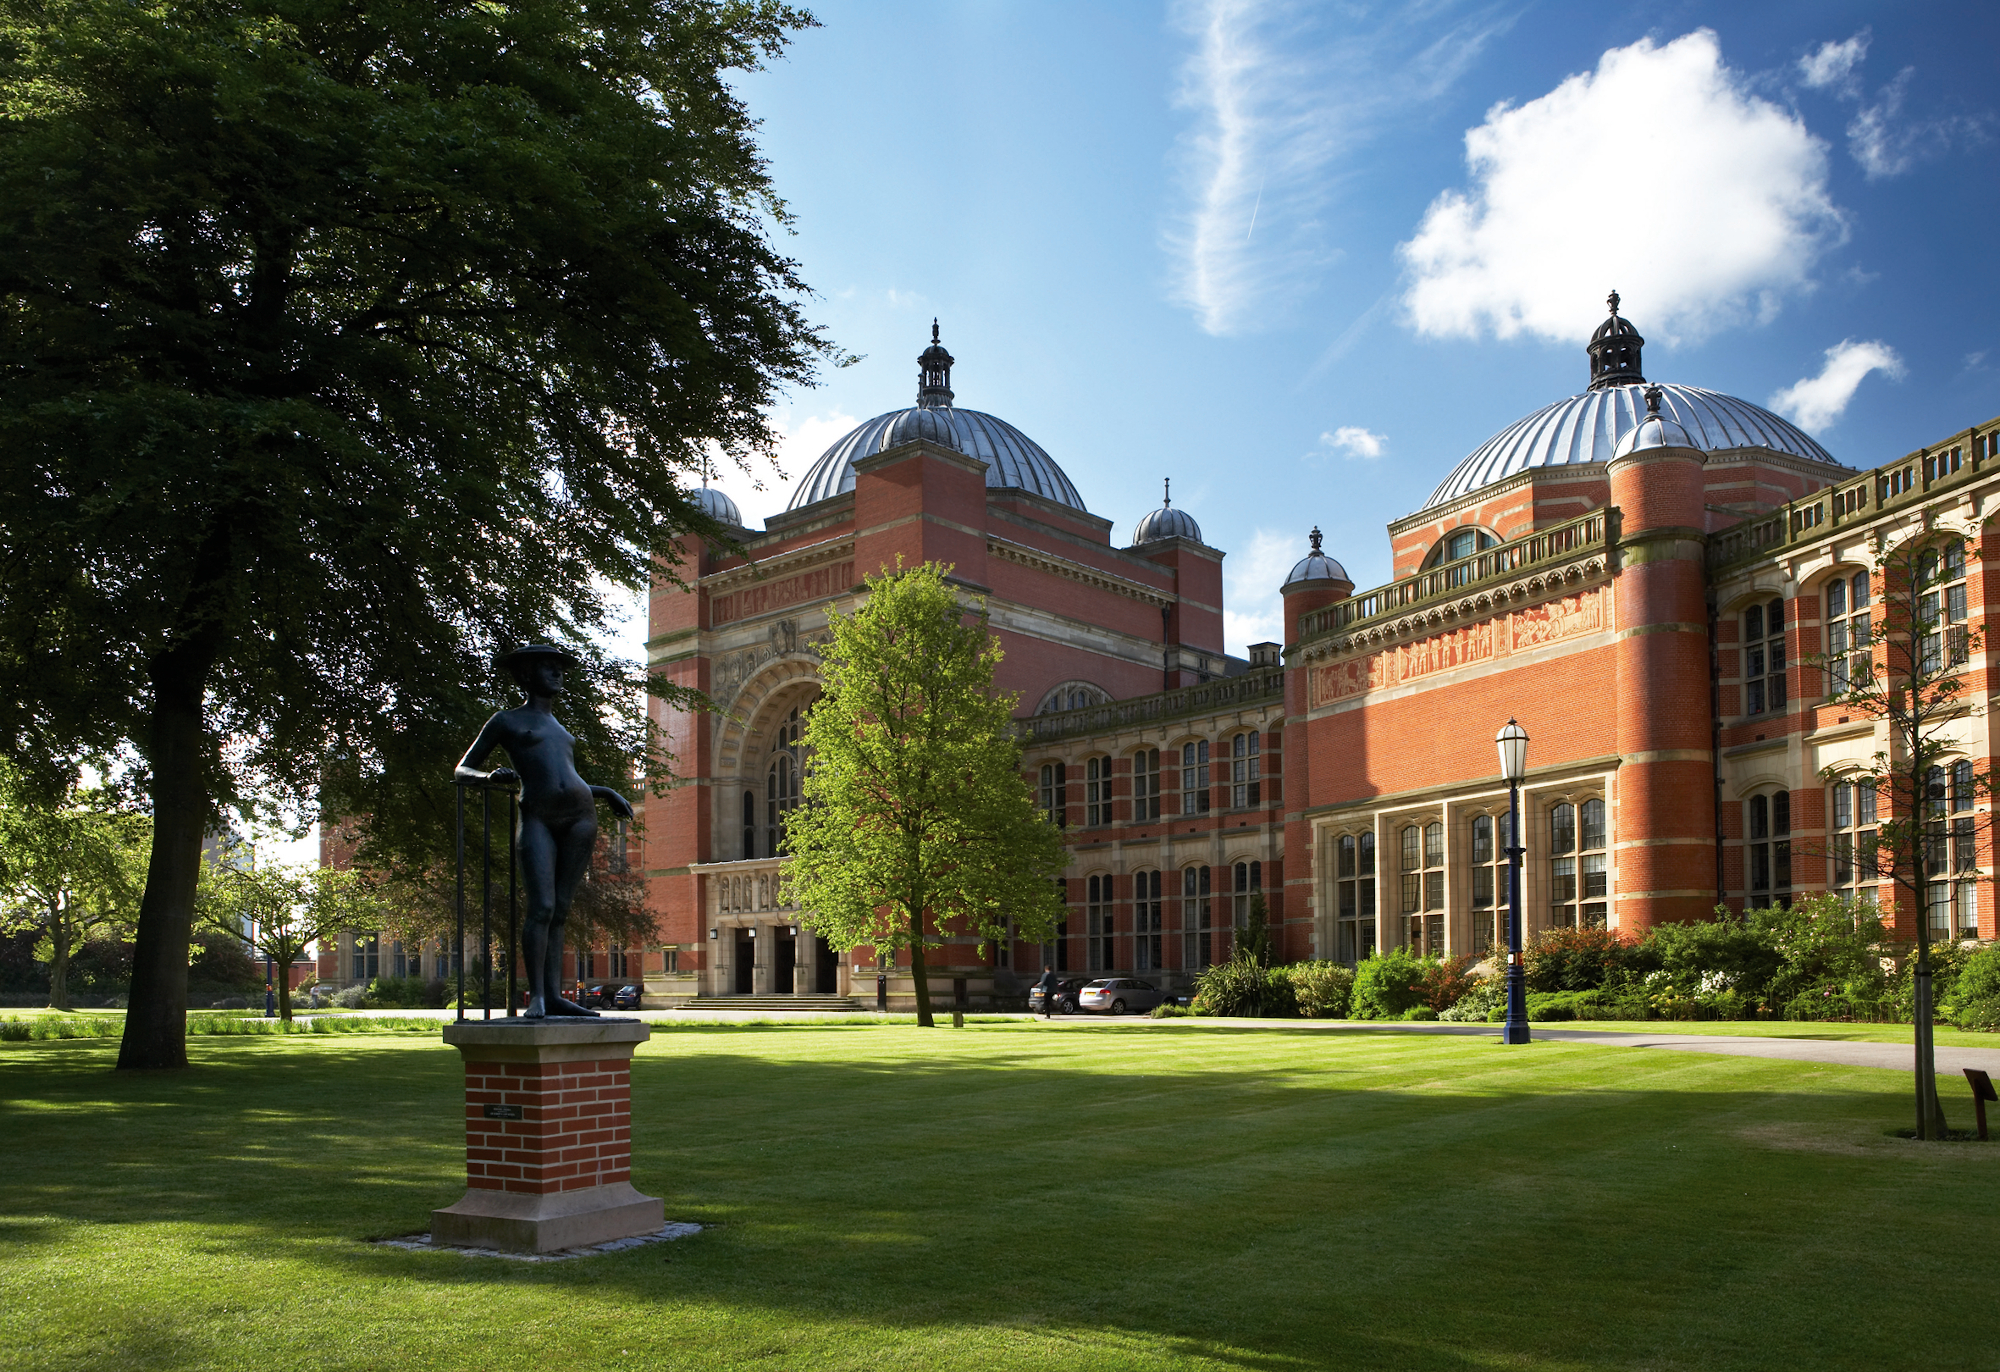 Picture of red-brick buildings and grass on The University of Birmingham campus